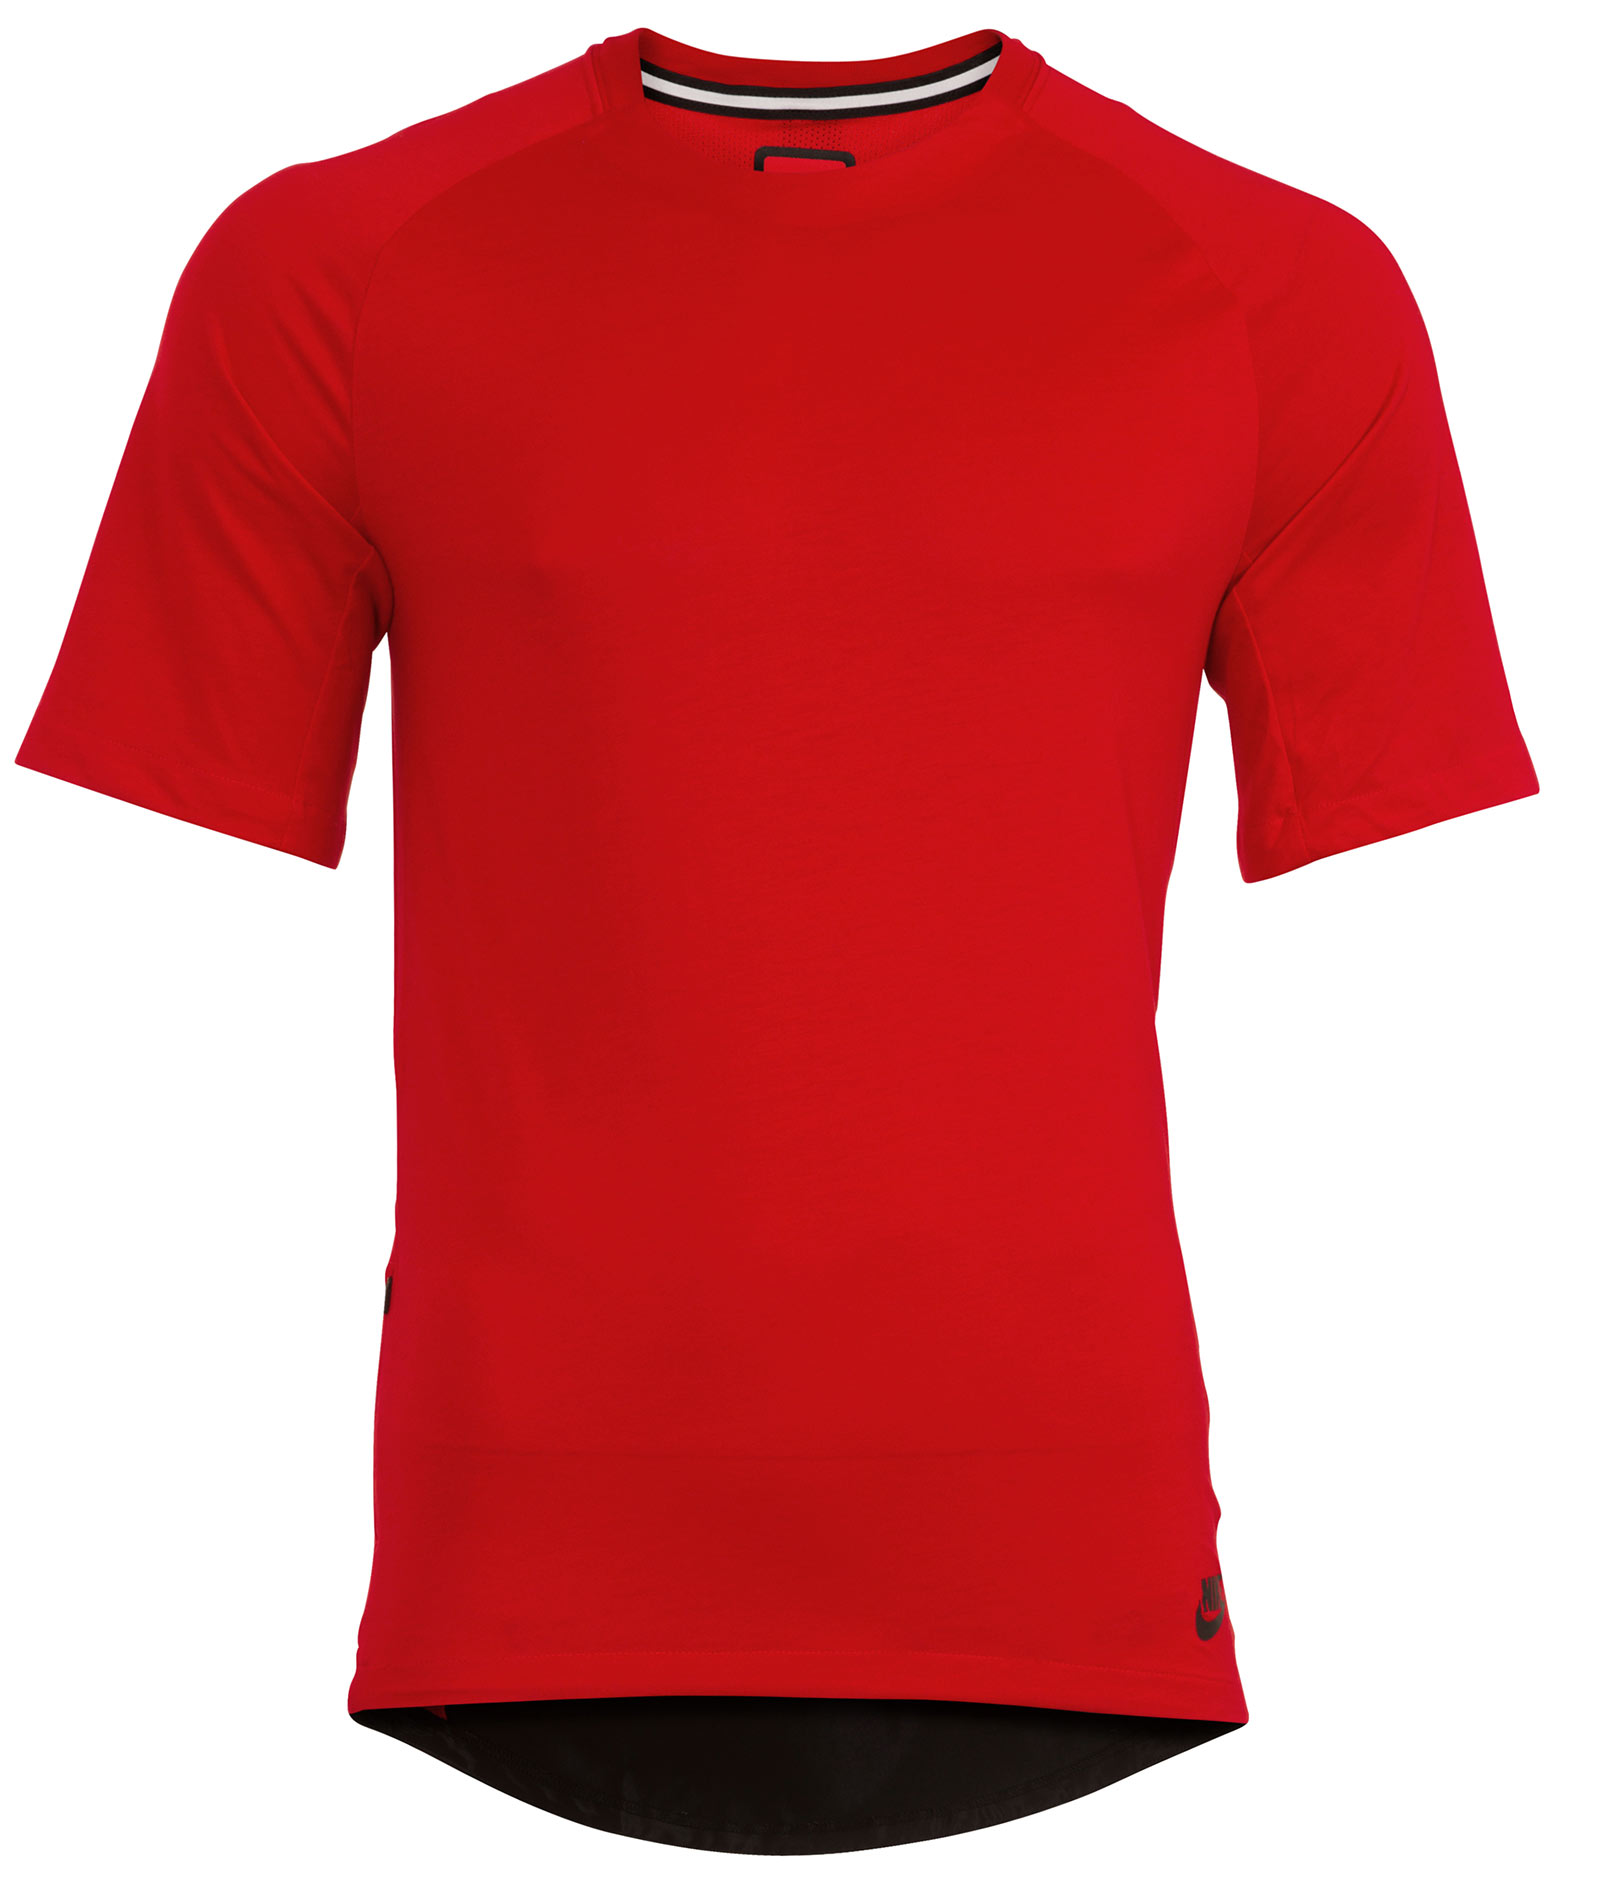 New-Nike-Sportswear-Bonded-Mens-Red-Short-Sleeve-Top-T-shirt-Size-M